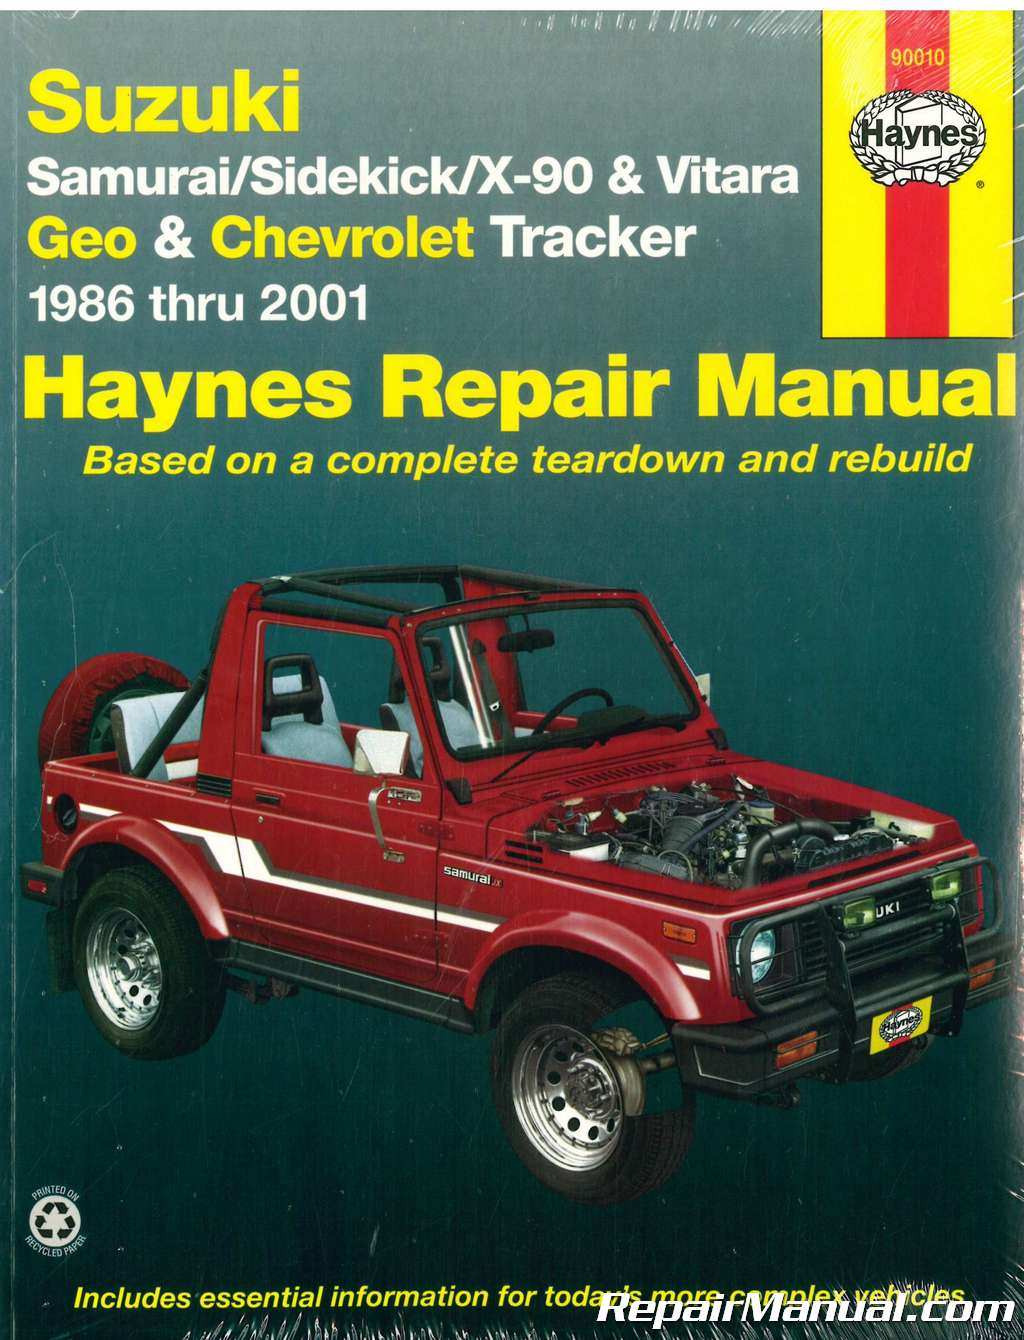 Suzuki Samurai Sidekick X-90 Vitara Chevrolet Geo Tracker 1986-2001 Haynes Repair  Manual